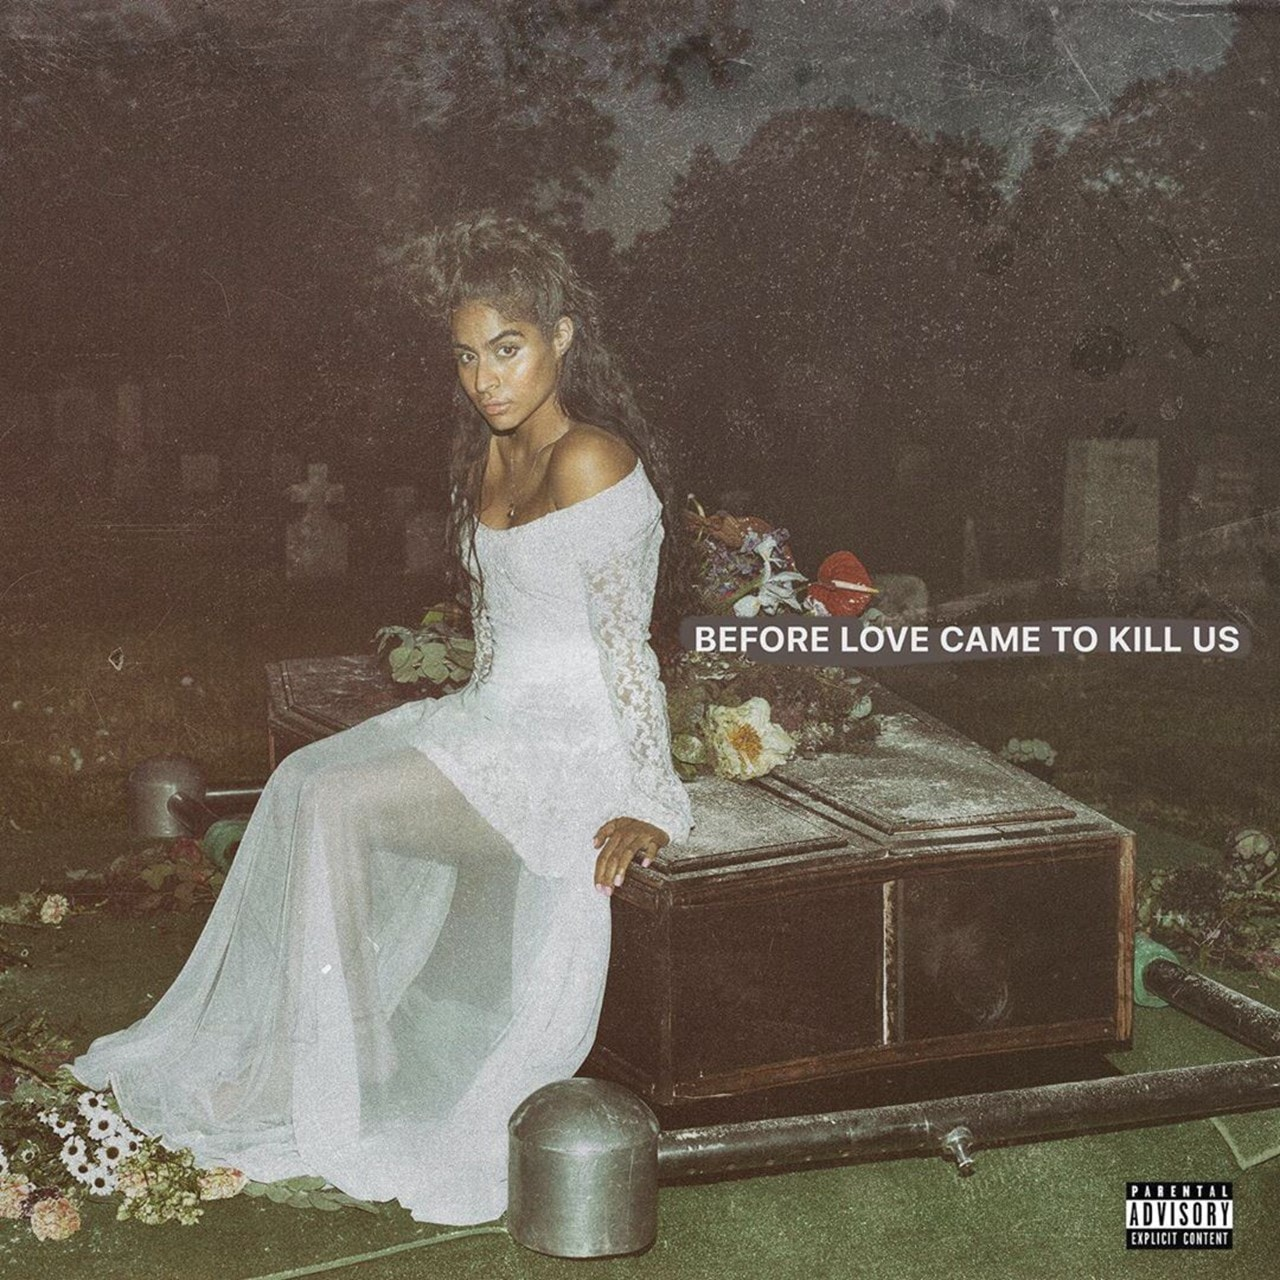 Before Love Came to Kill Us - 1